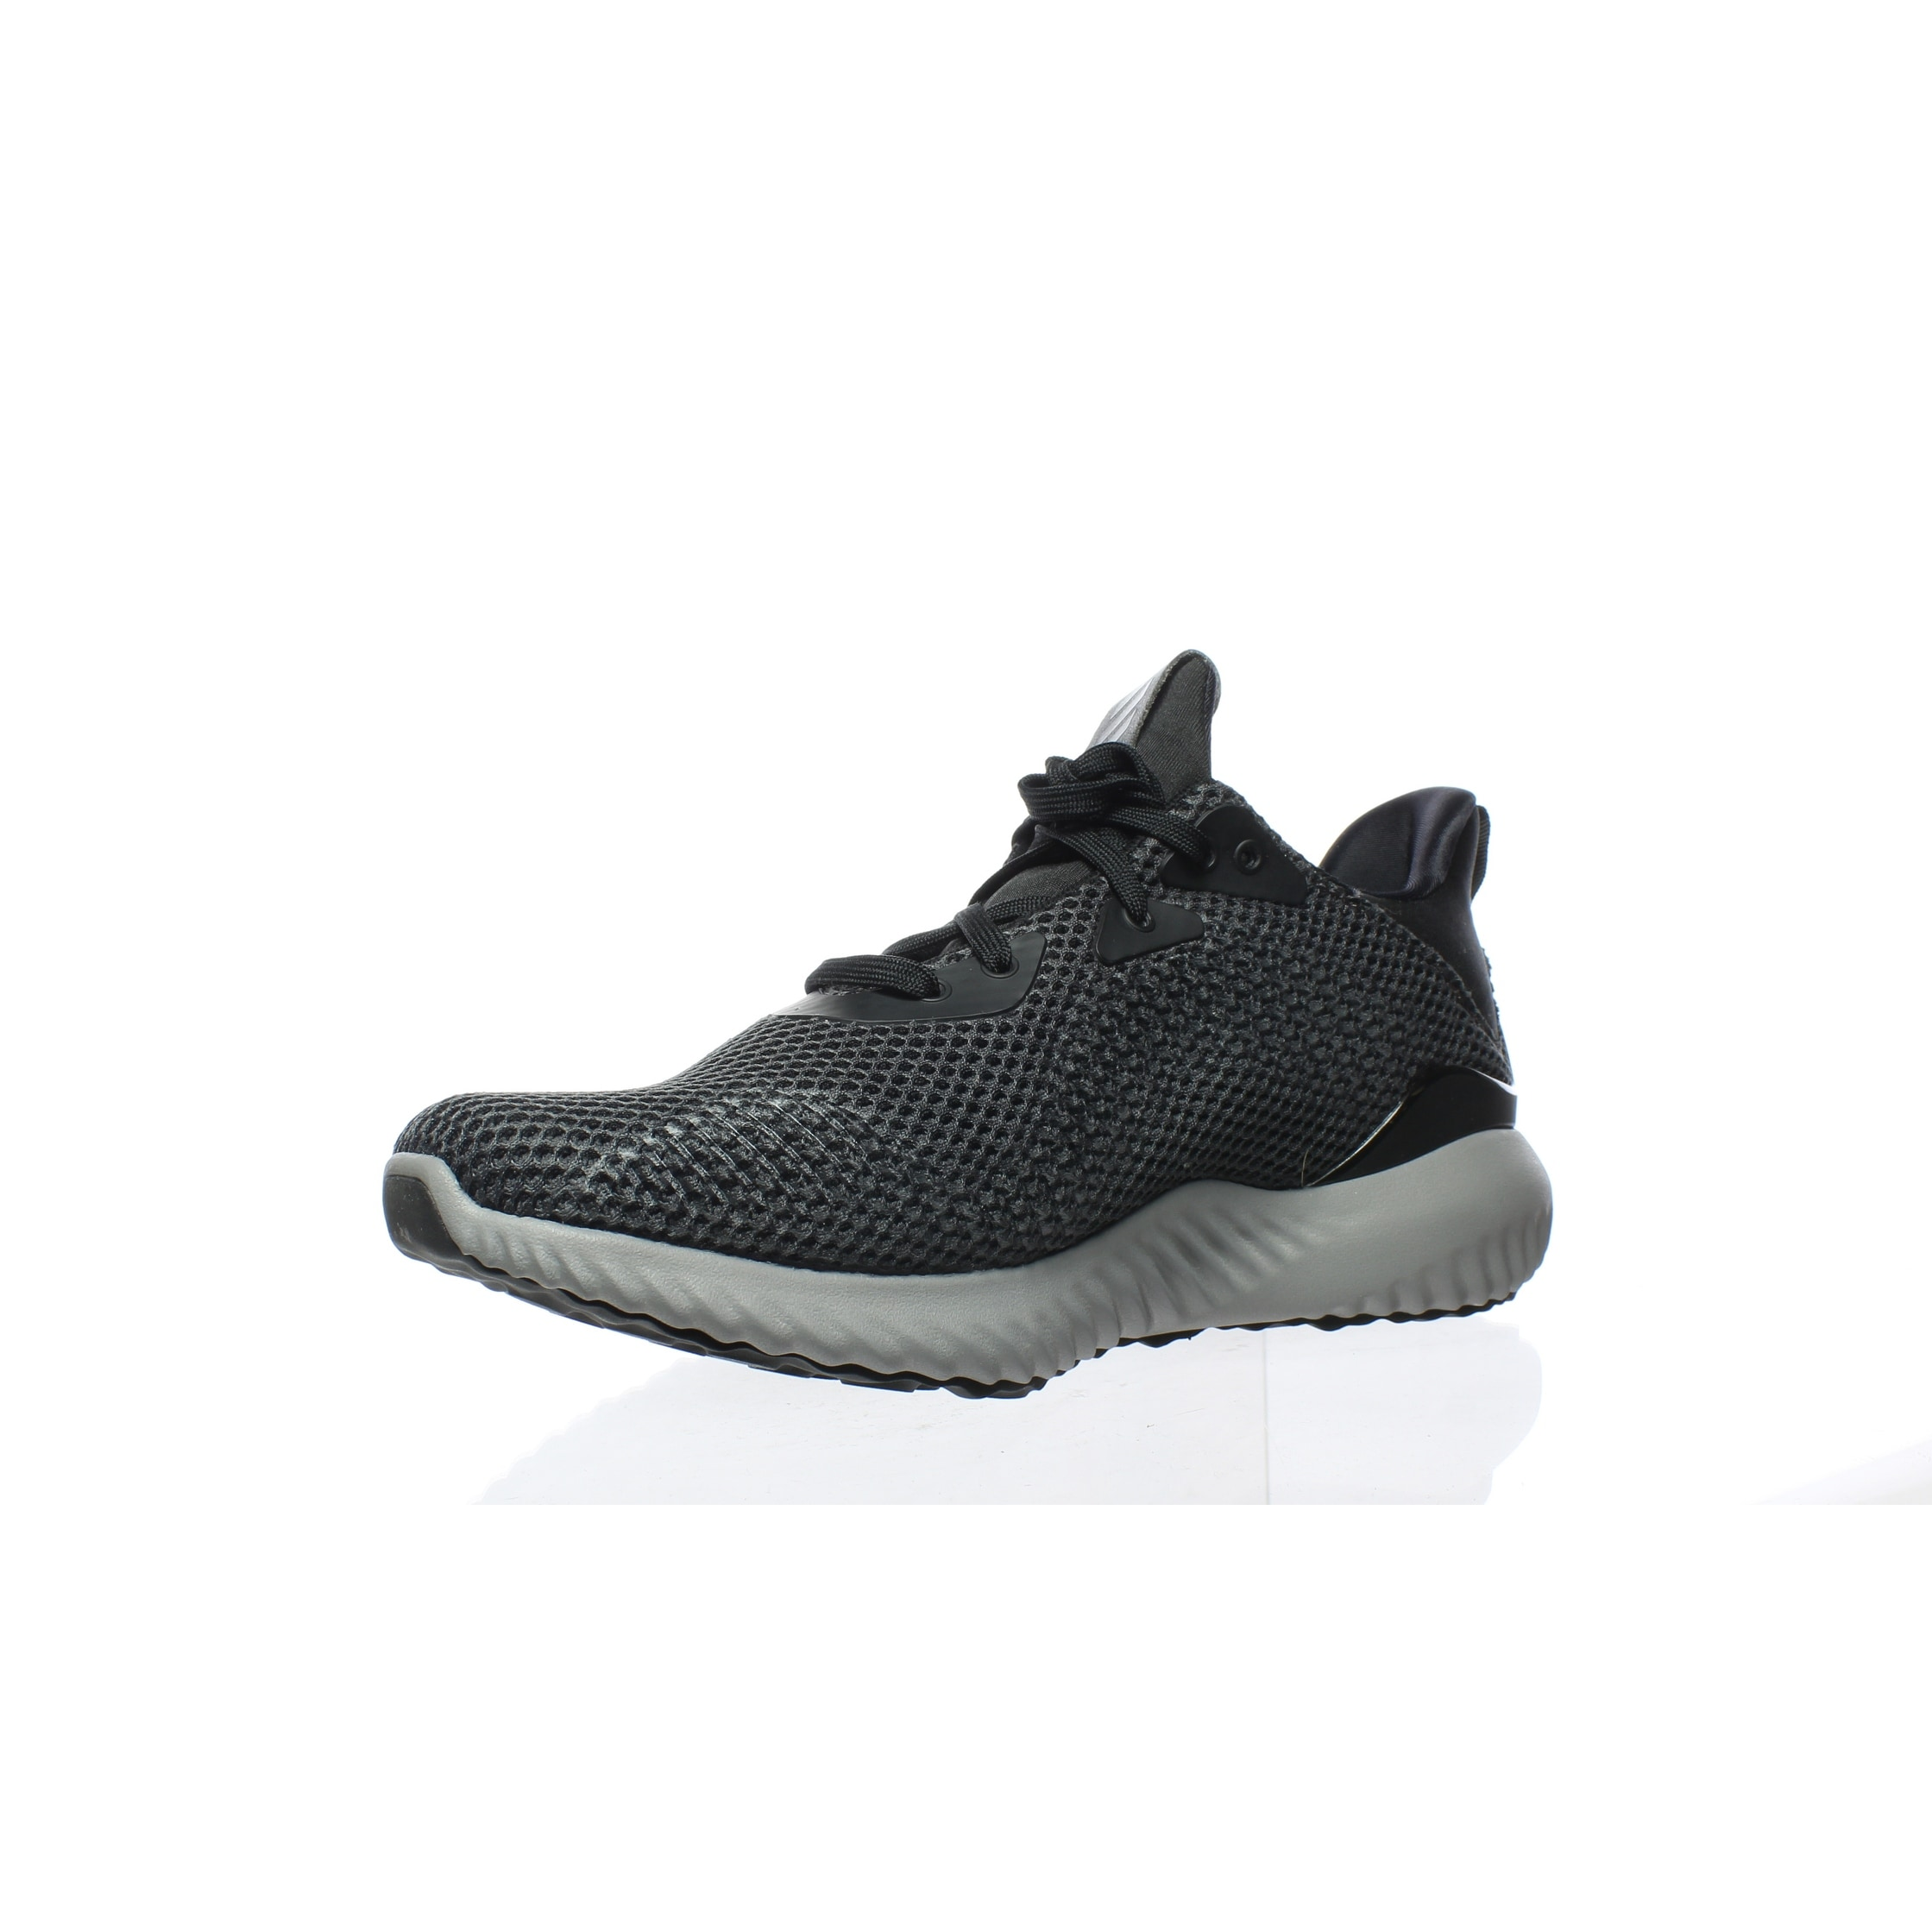 e49508d78313a Shop Adidas Mens Alphabounce 1 Gray Running Shoes Size 8.5 - Free Shipping  Today - Overstock - 27333832